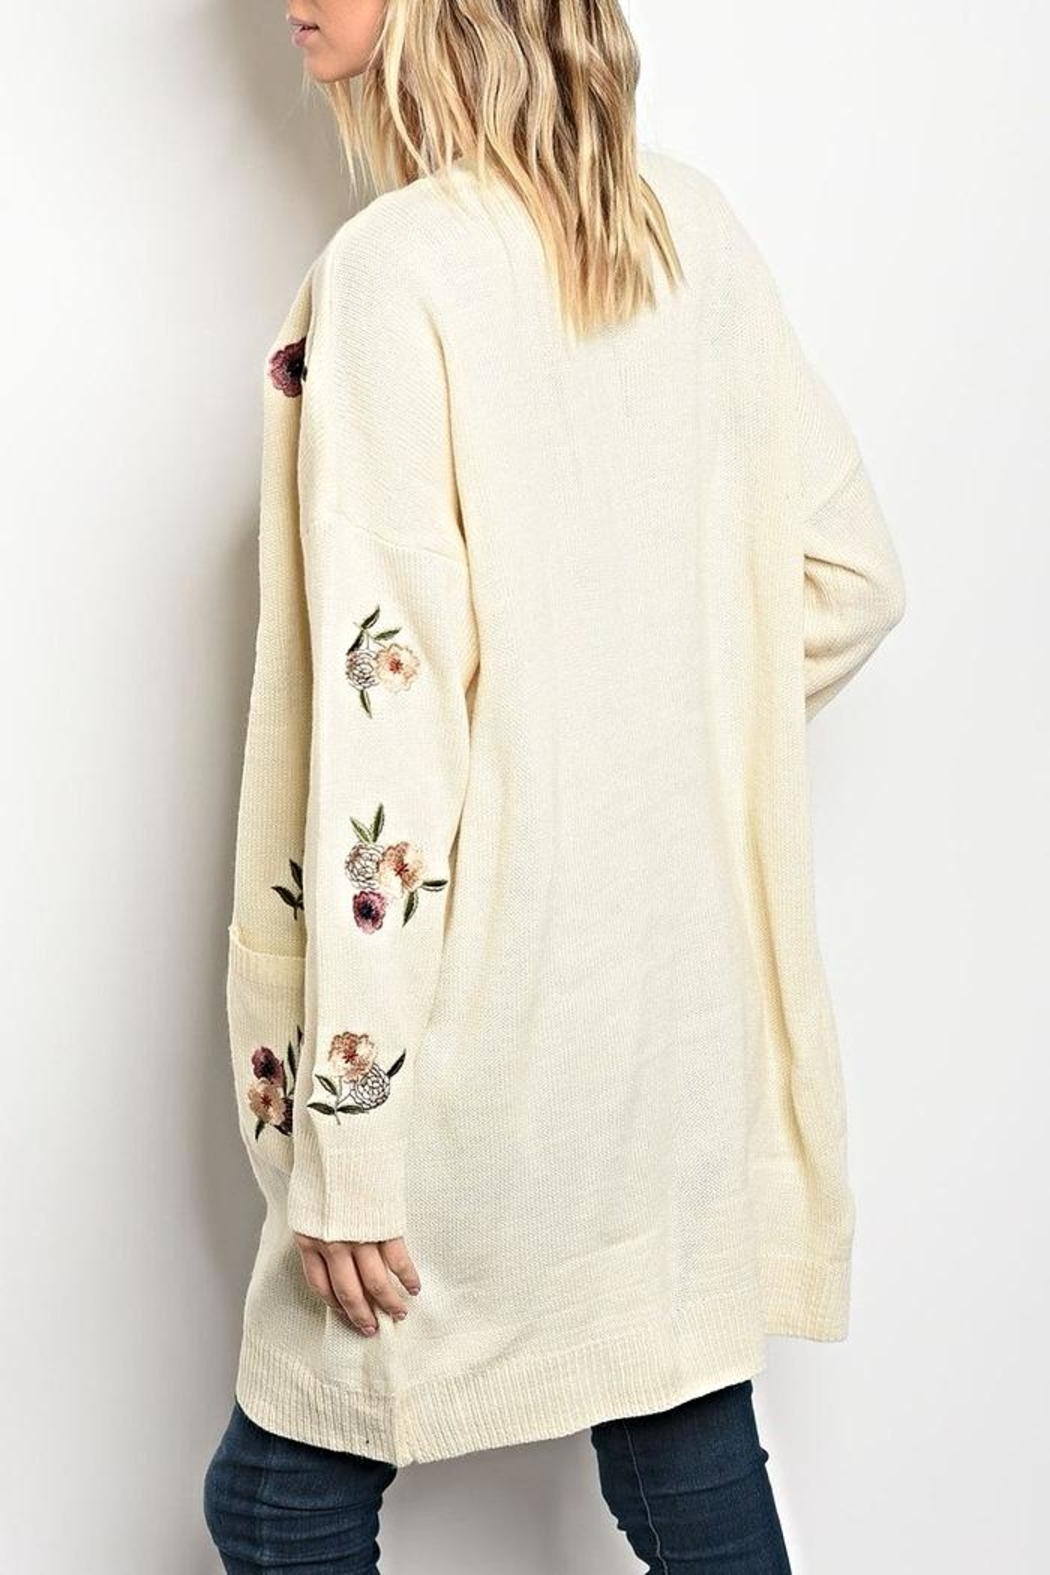 LoveRiche Floral Sweater Cardigan - Front Full Image